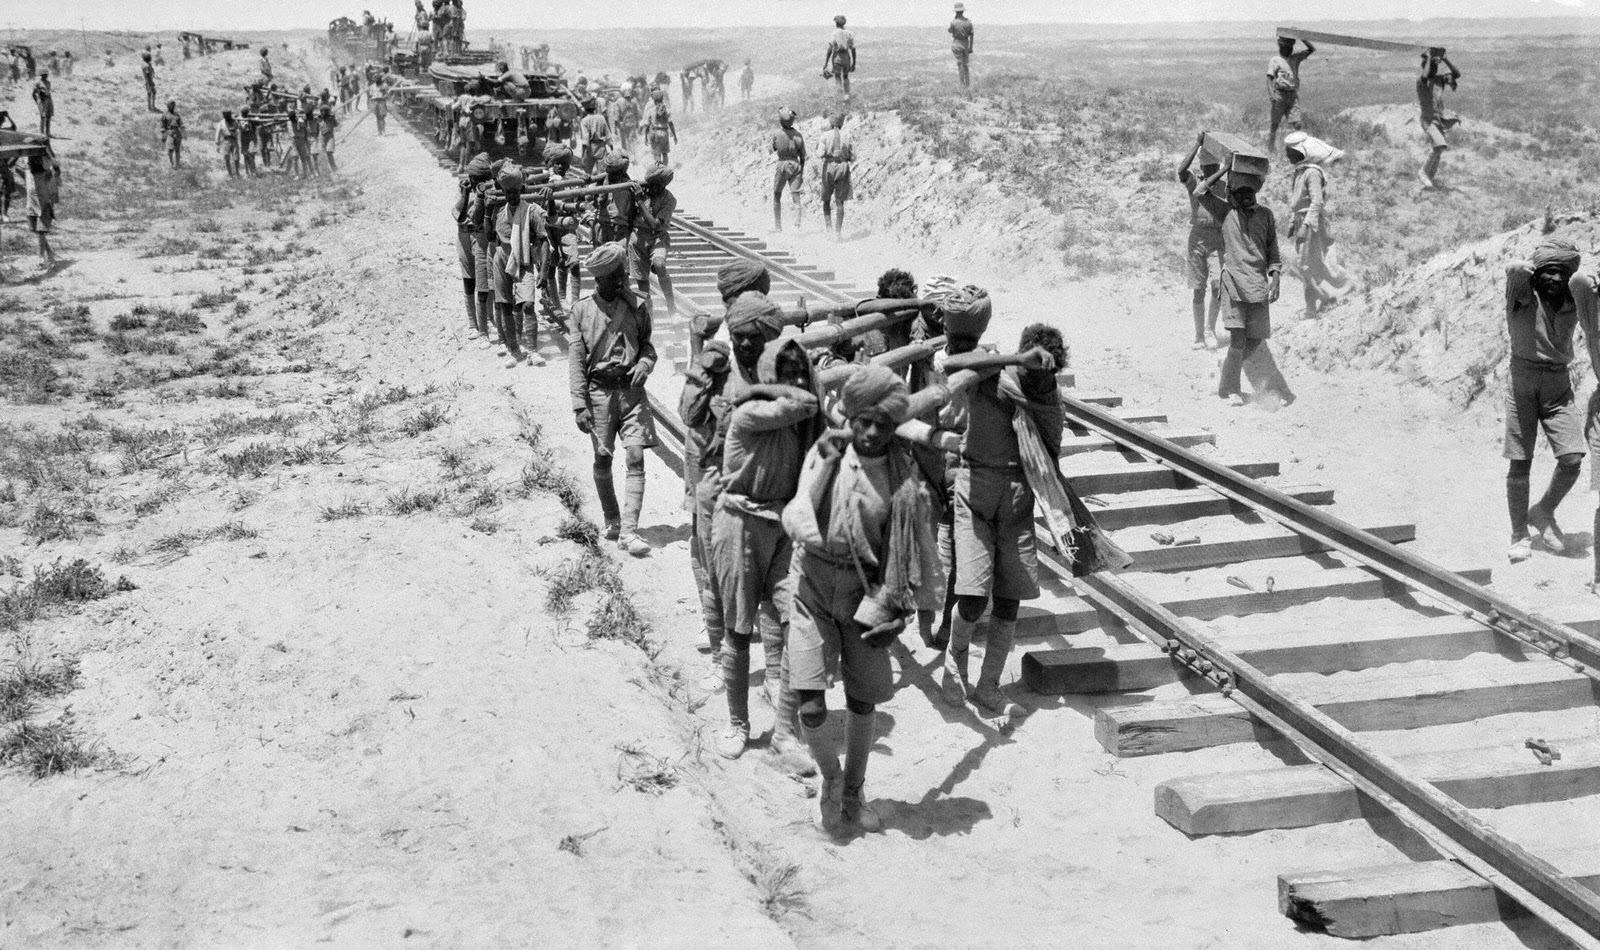 Indian Army at World War 1